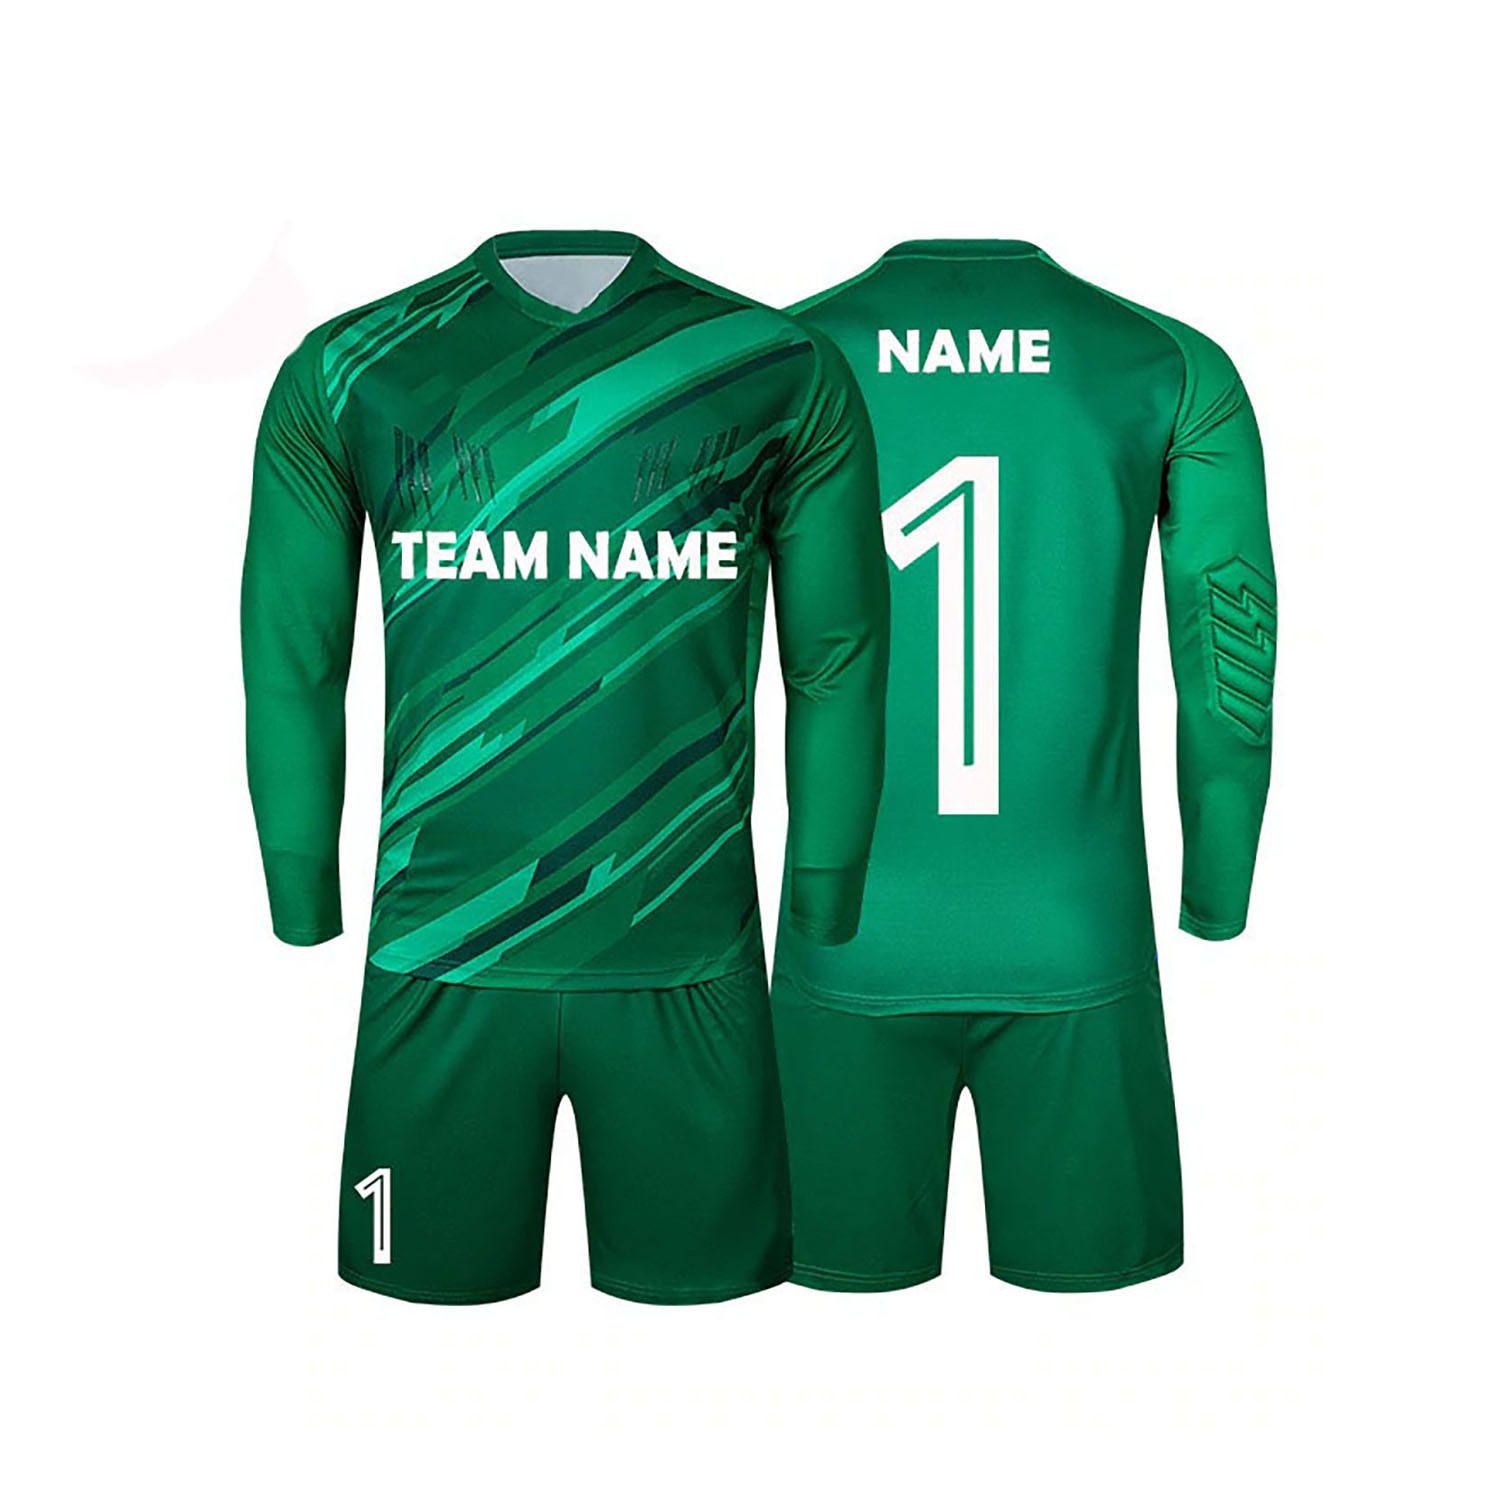 Custom Football Jerseys Goalkeeper Jersey Men Long Sleeve Football Uniform Soccer Shorts Training Sponge Protector.